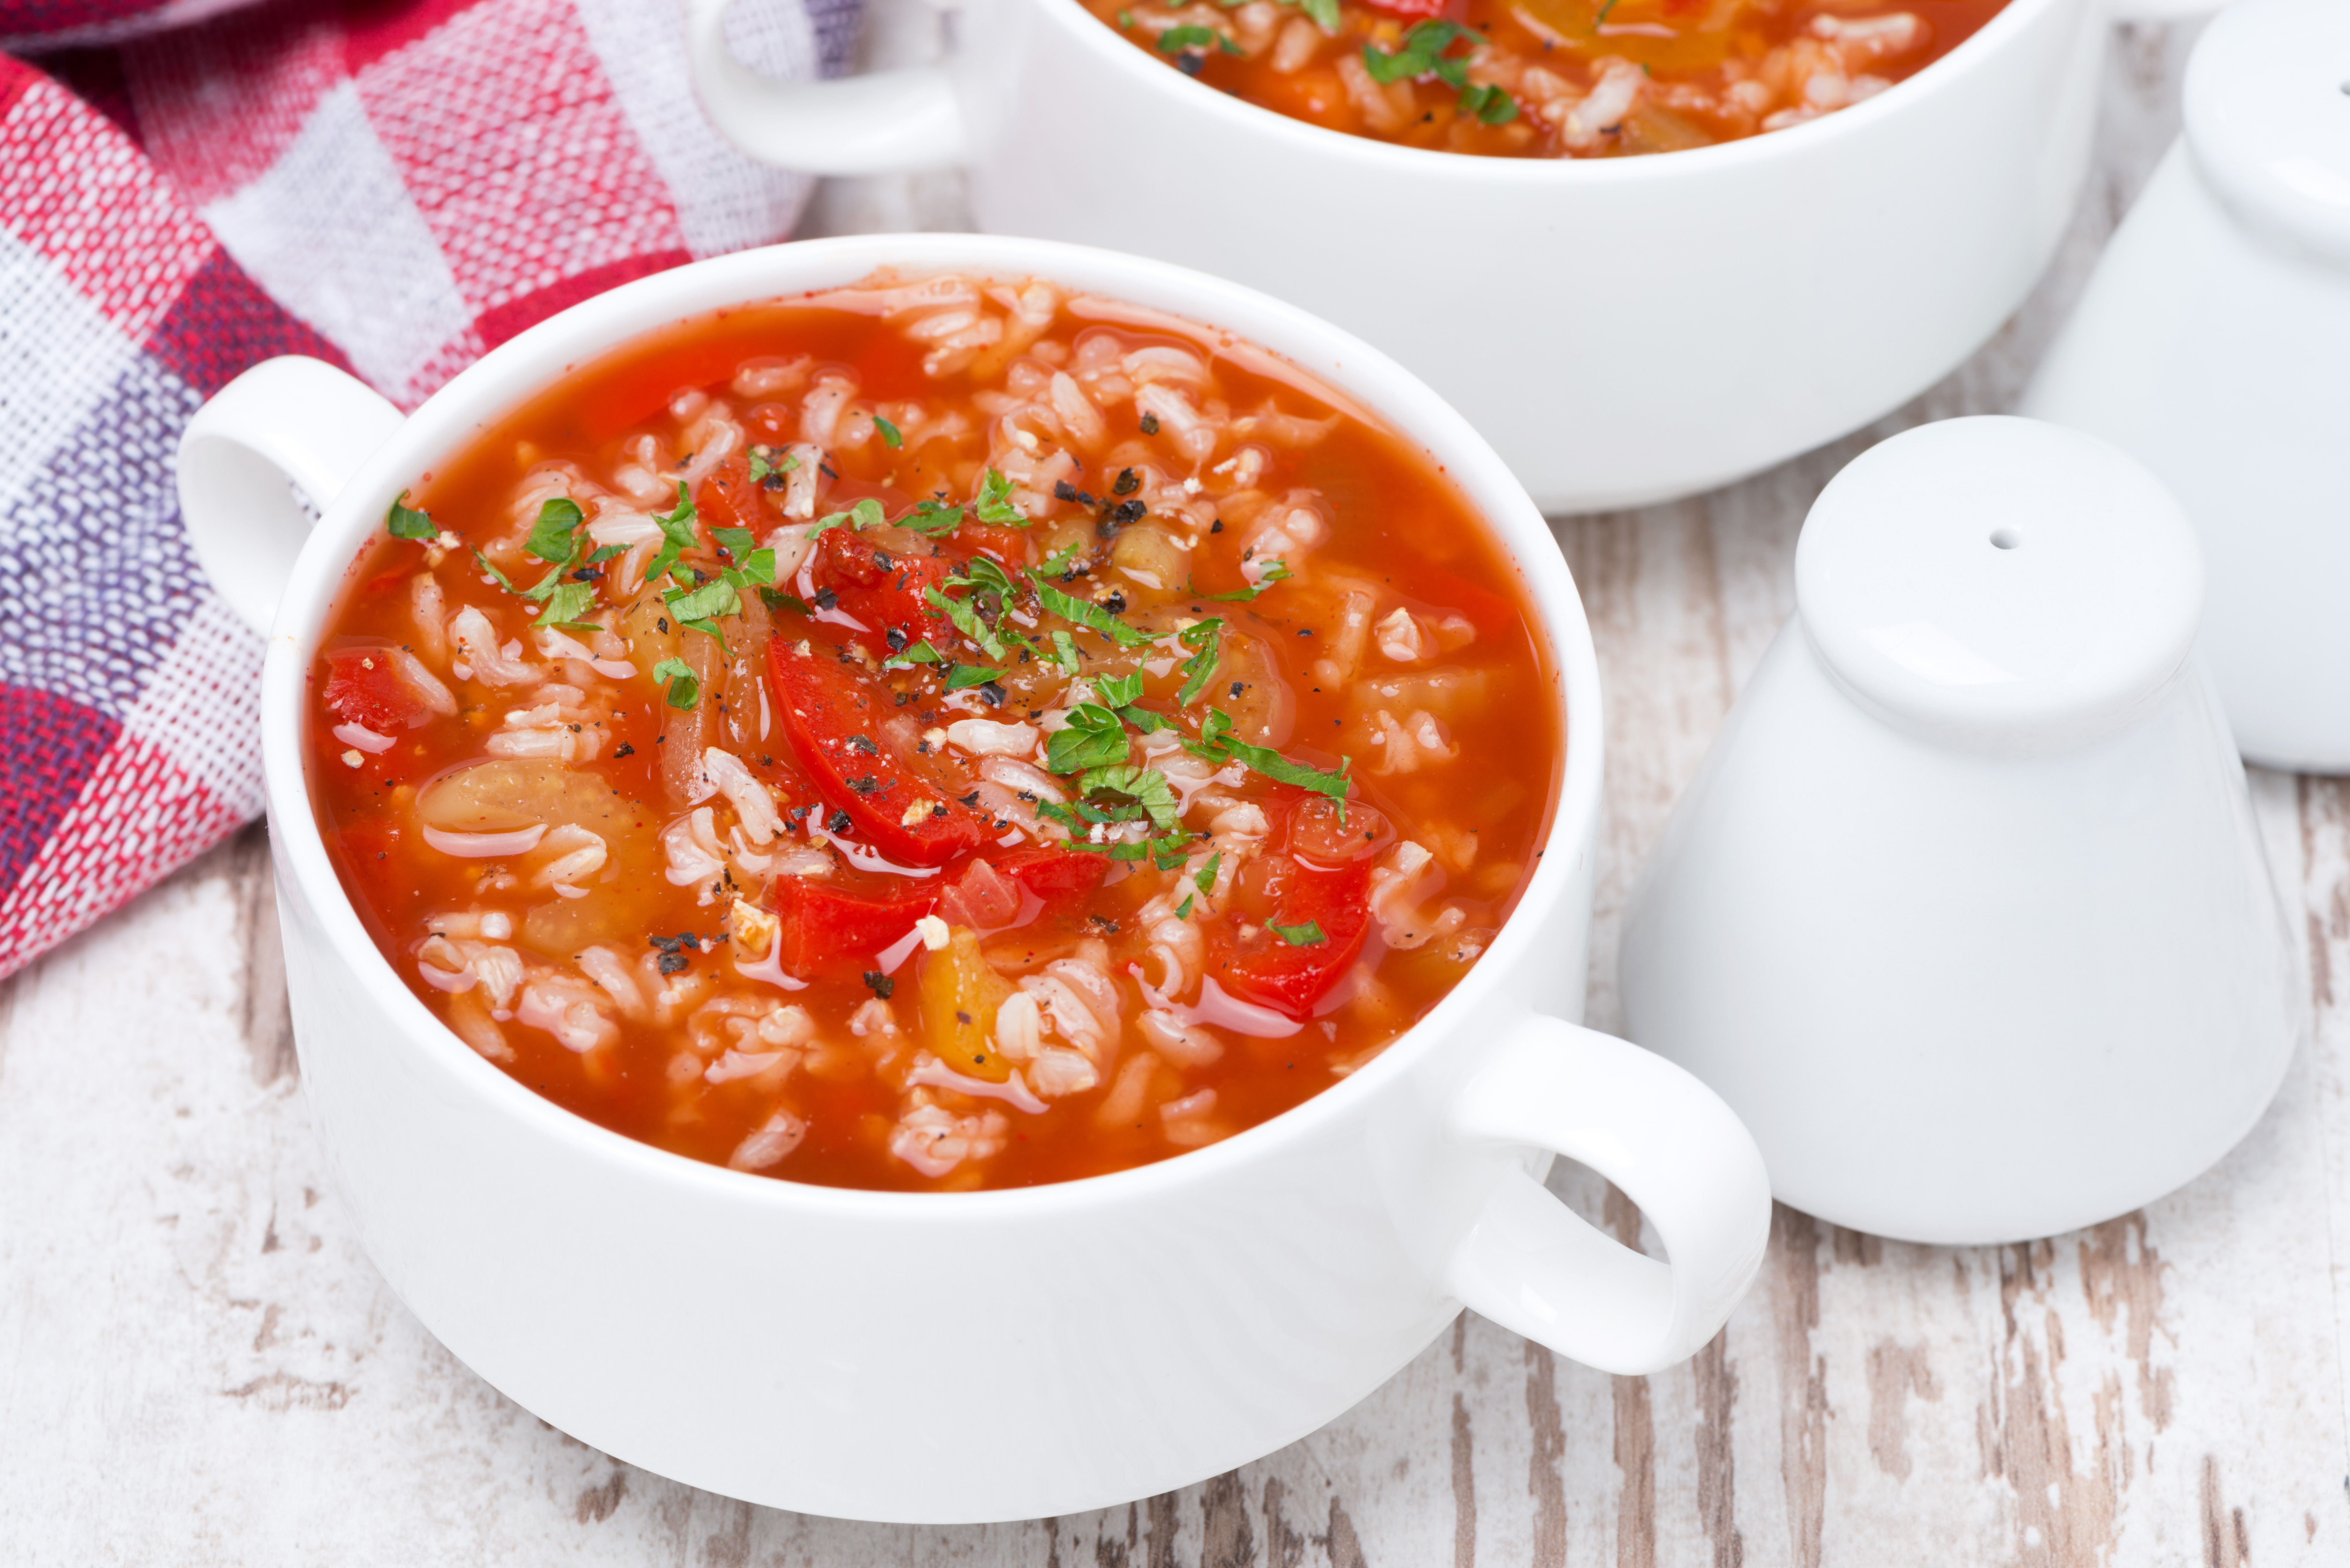 Tomato soup with rice and vegetables in bowl, top view